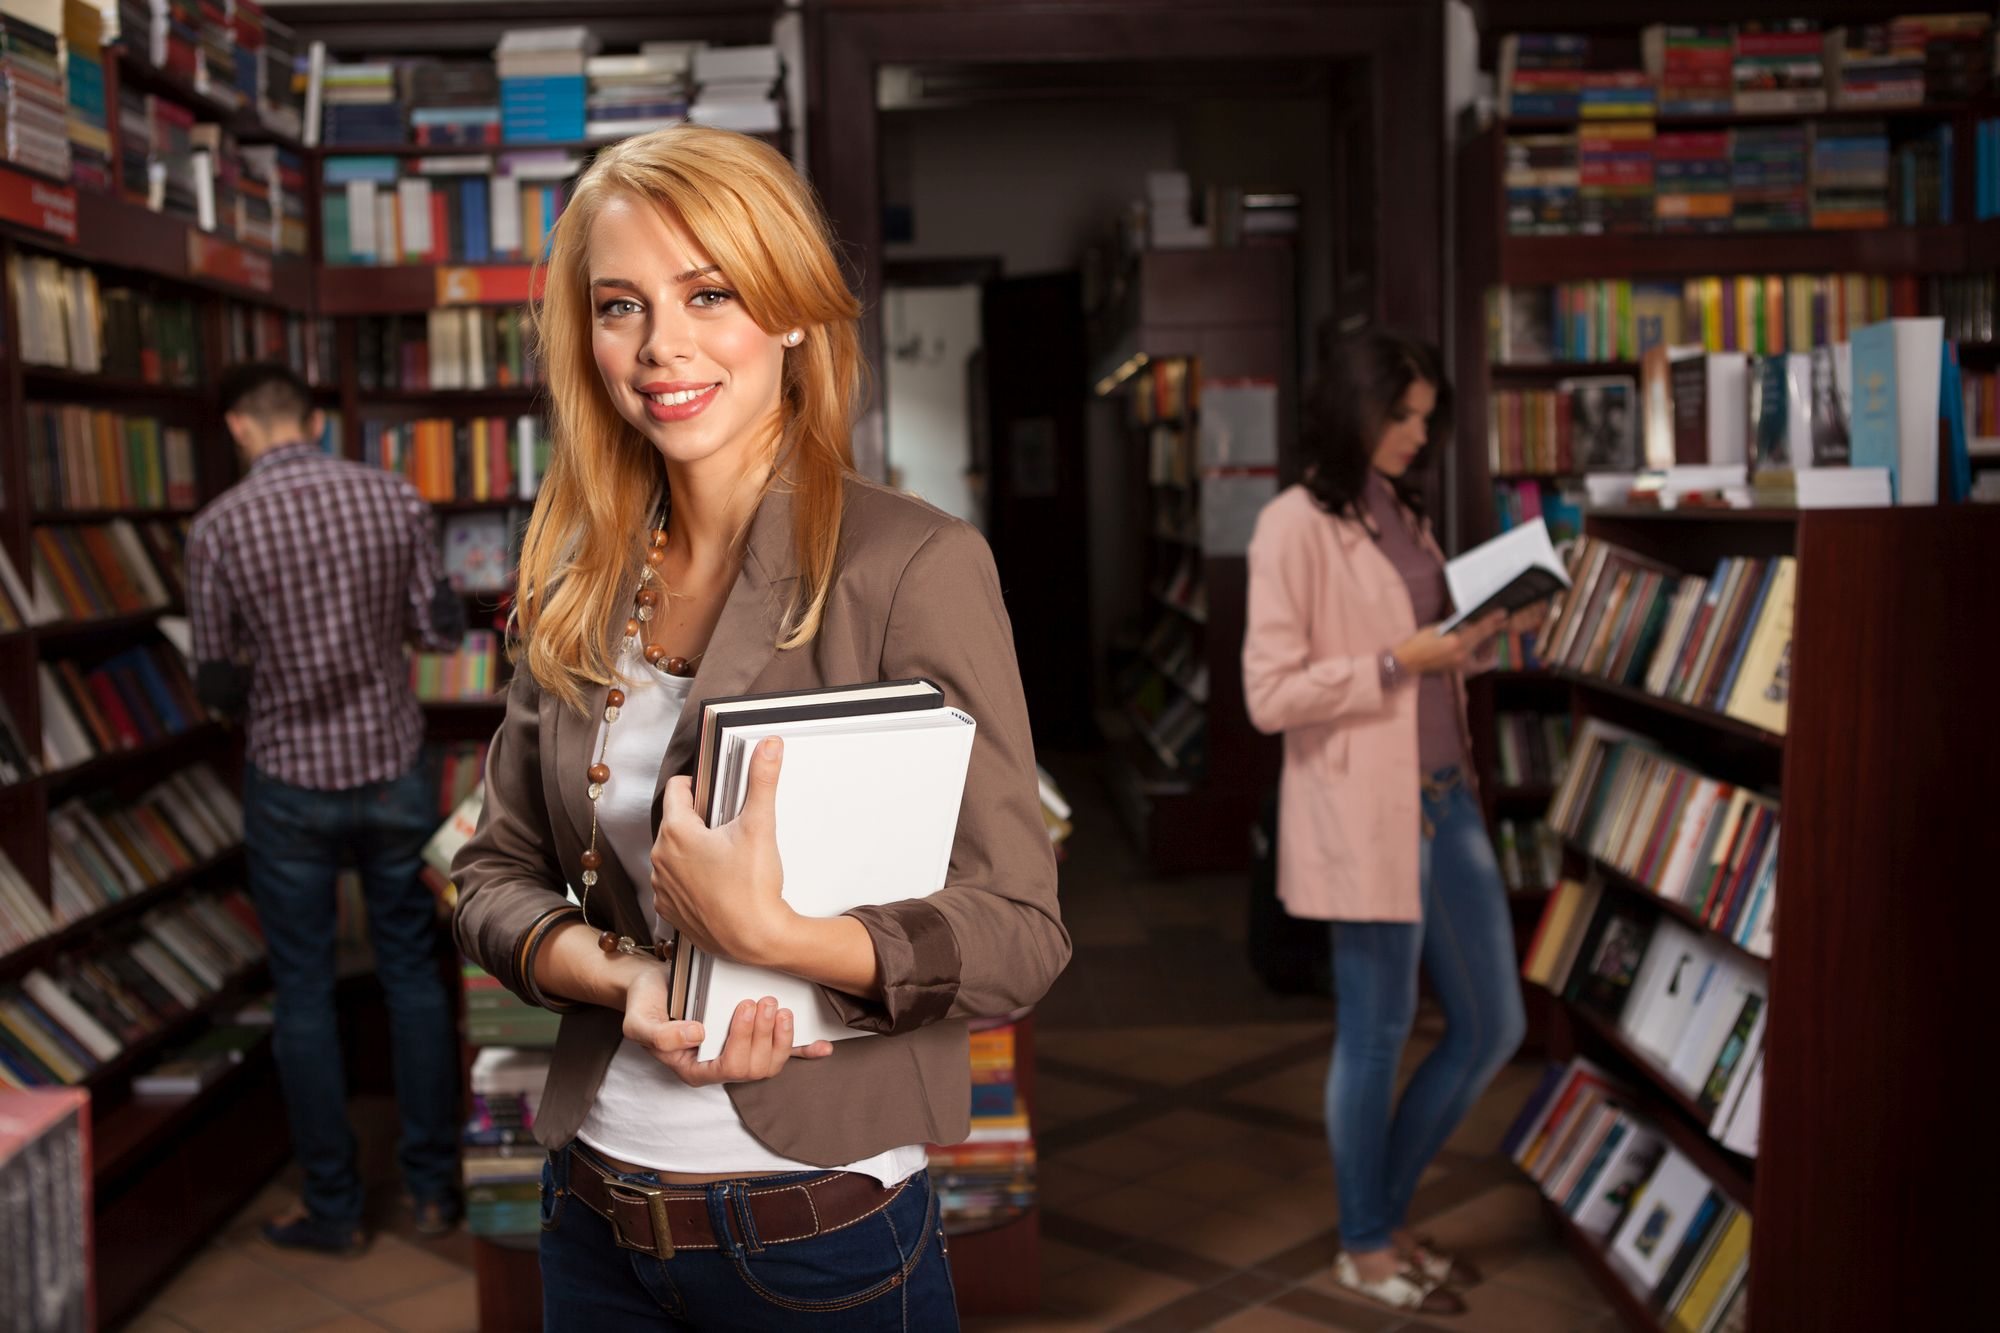 chraming young girl in bookshop